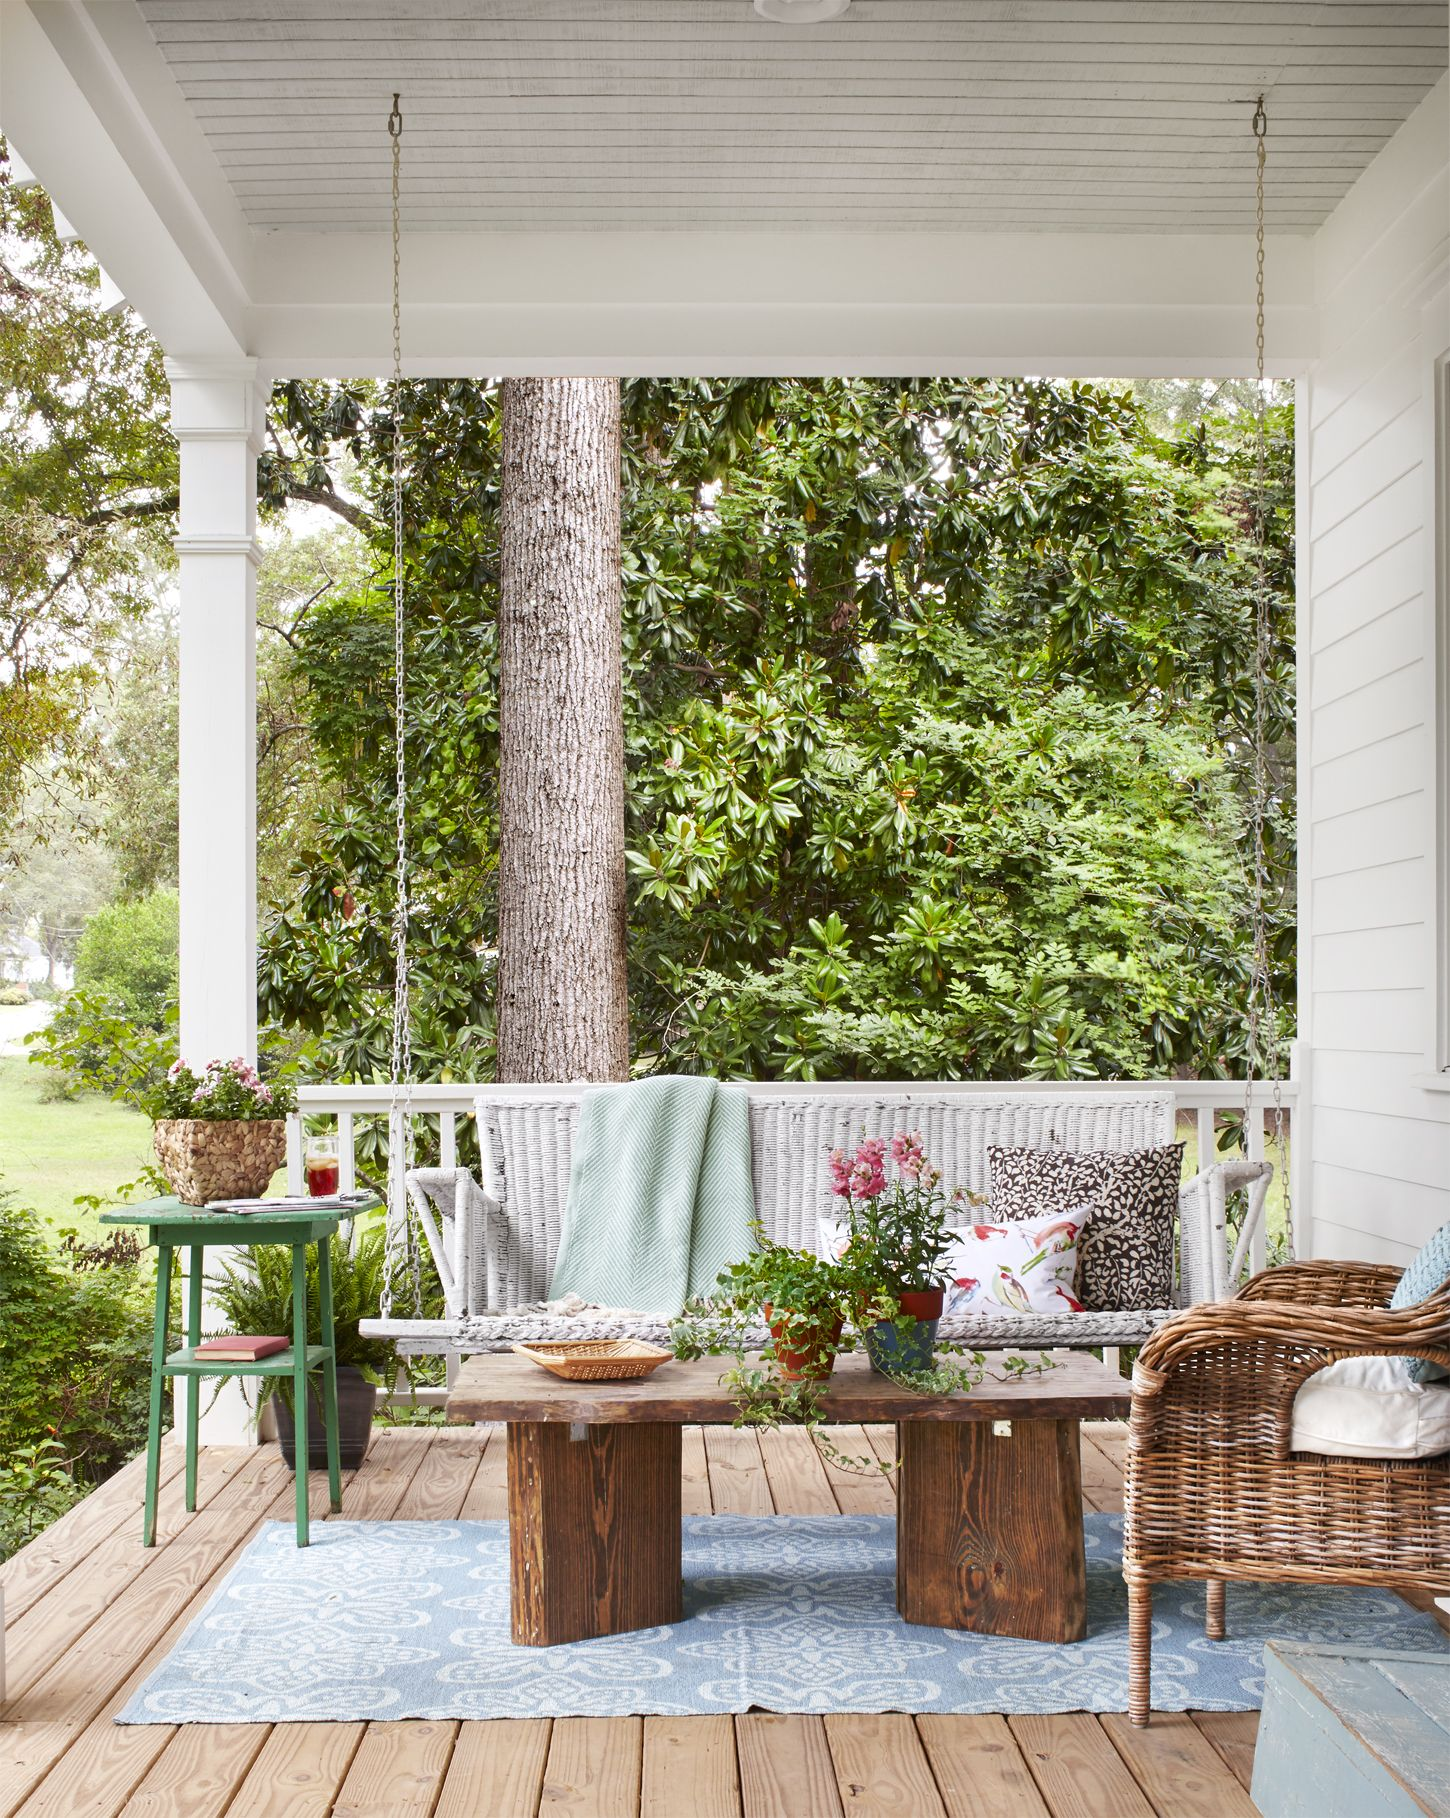 65 Inspiring Ways to Update Your Porch